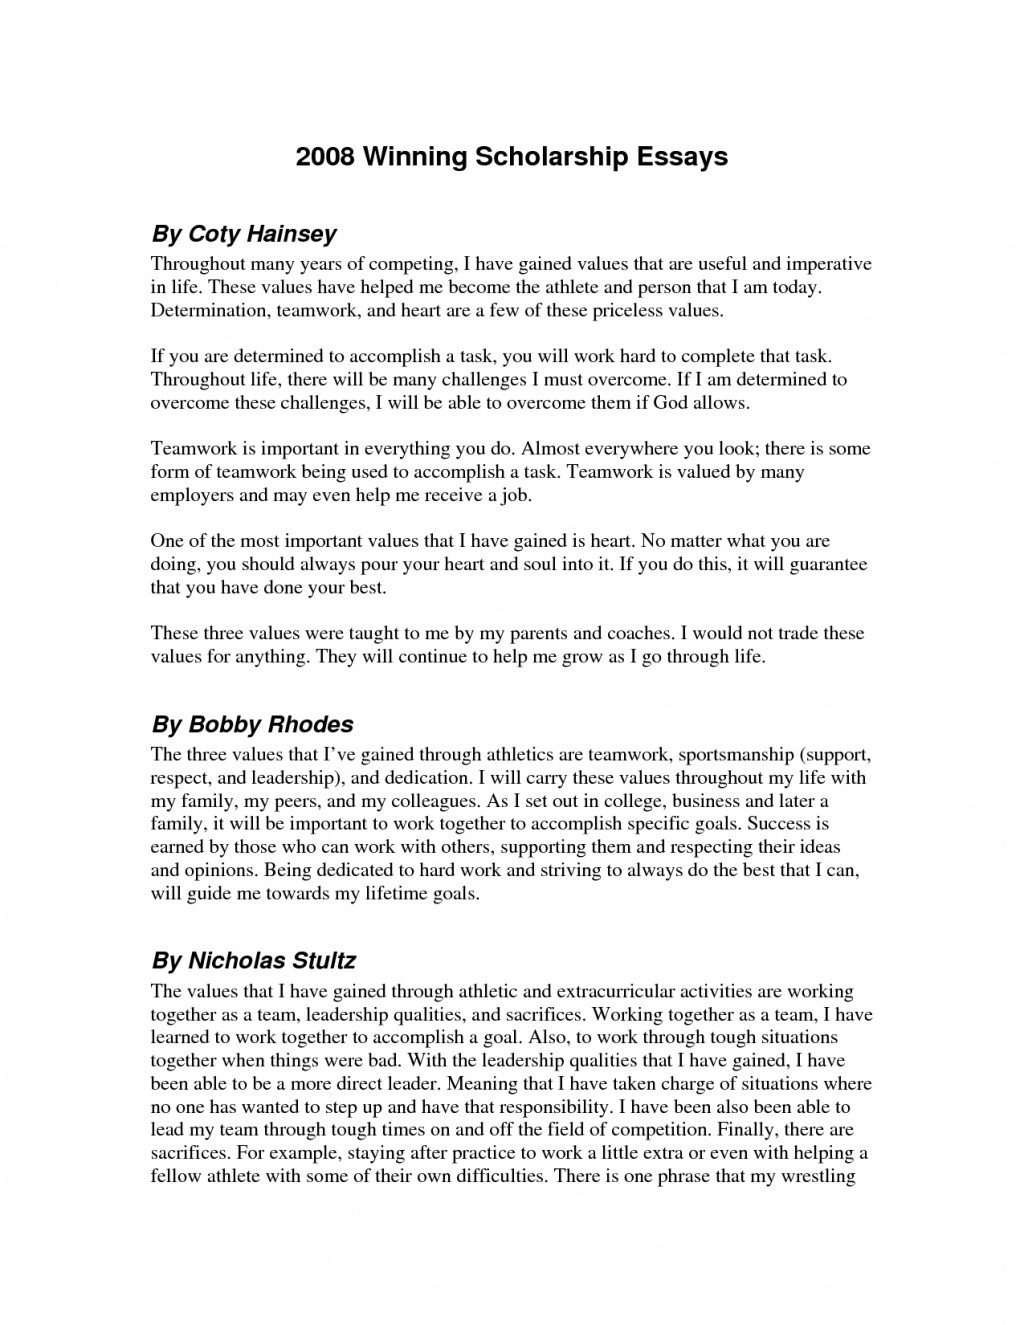 005 Winning Scholarship Essays Essay Example Awesome Collection Of Best Guidelines Unique What Do You Exceptional Examples Pdf Gilman How To Write Large